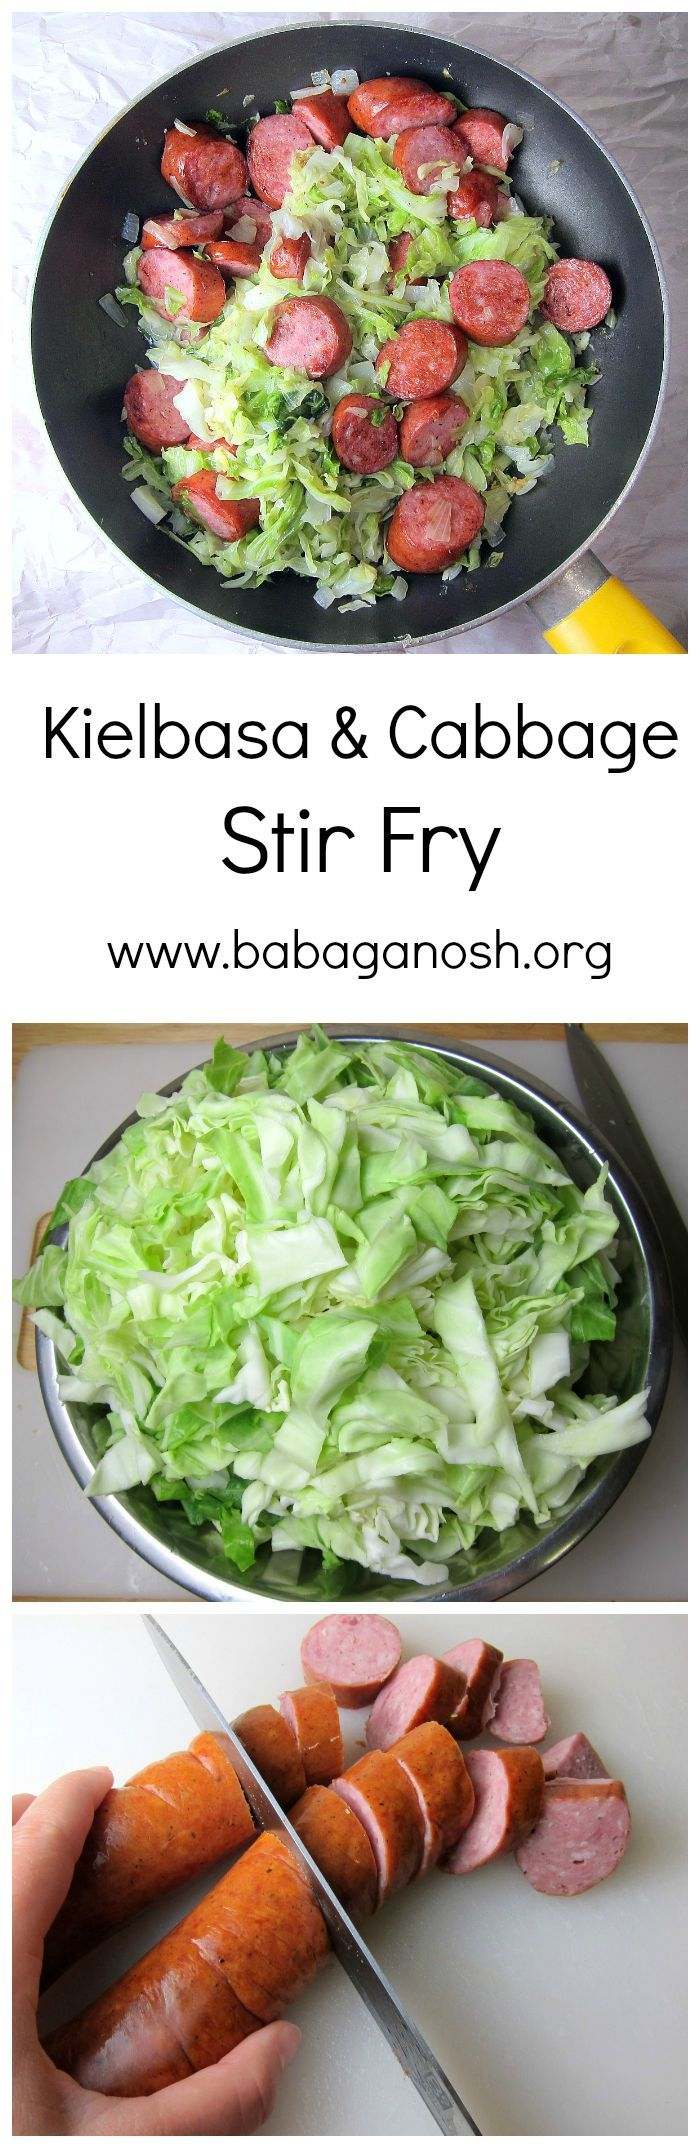 Kielbasa and Cabbage Stir Fry #ethnic #recipe #vegetables